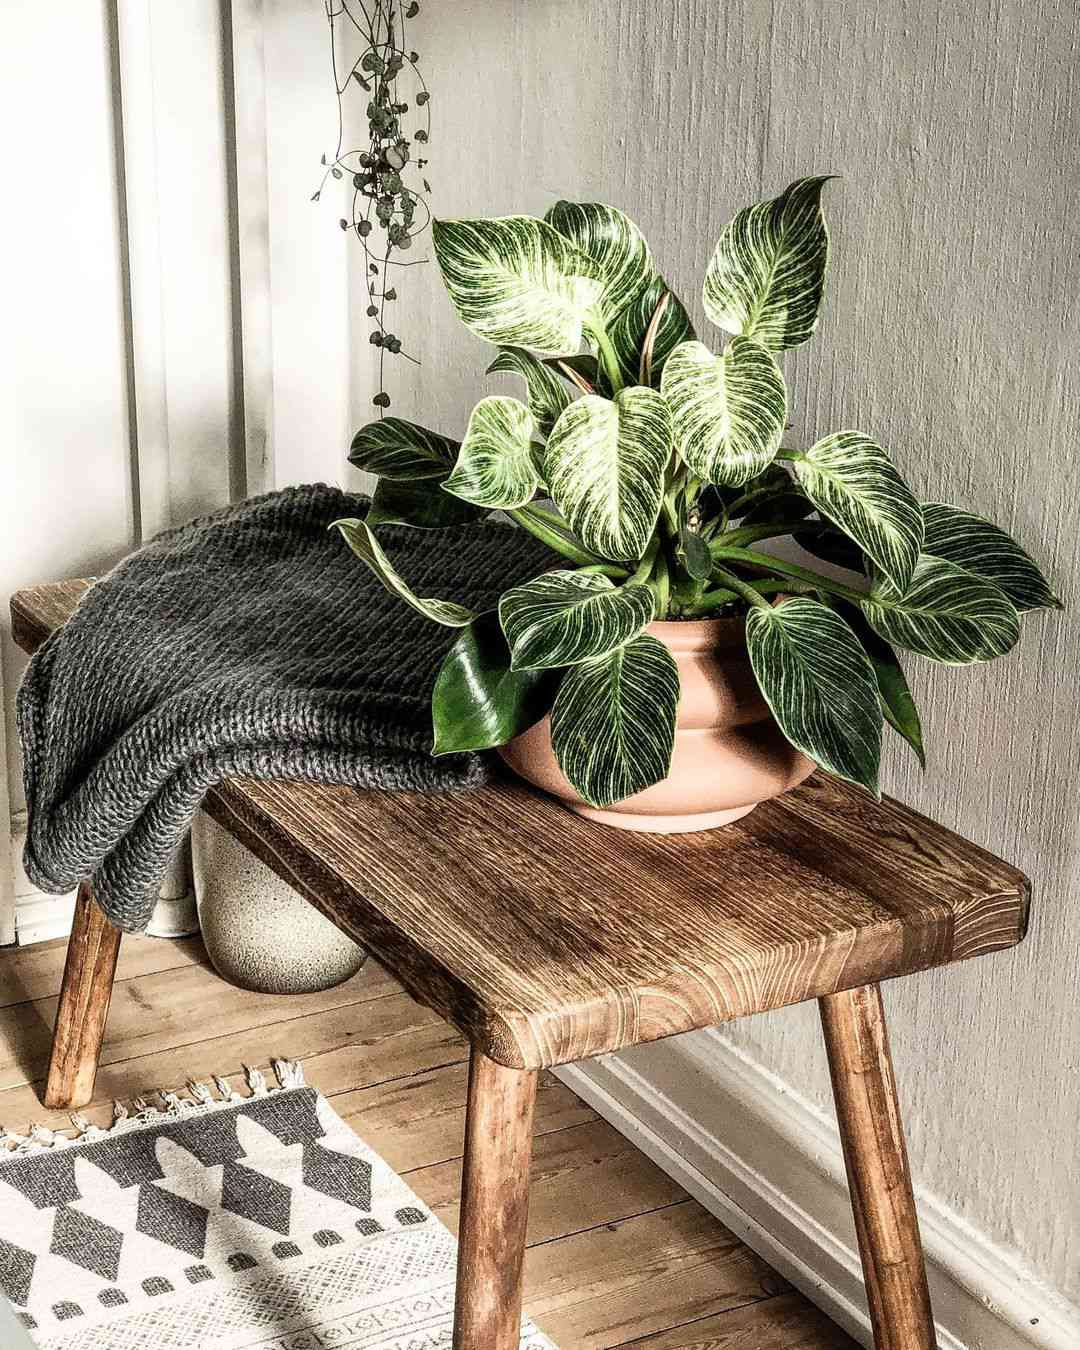 philodendron birkin in terra cotta pot on low wooden table with gray knitted blanket